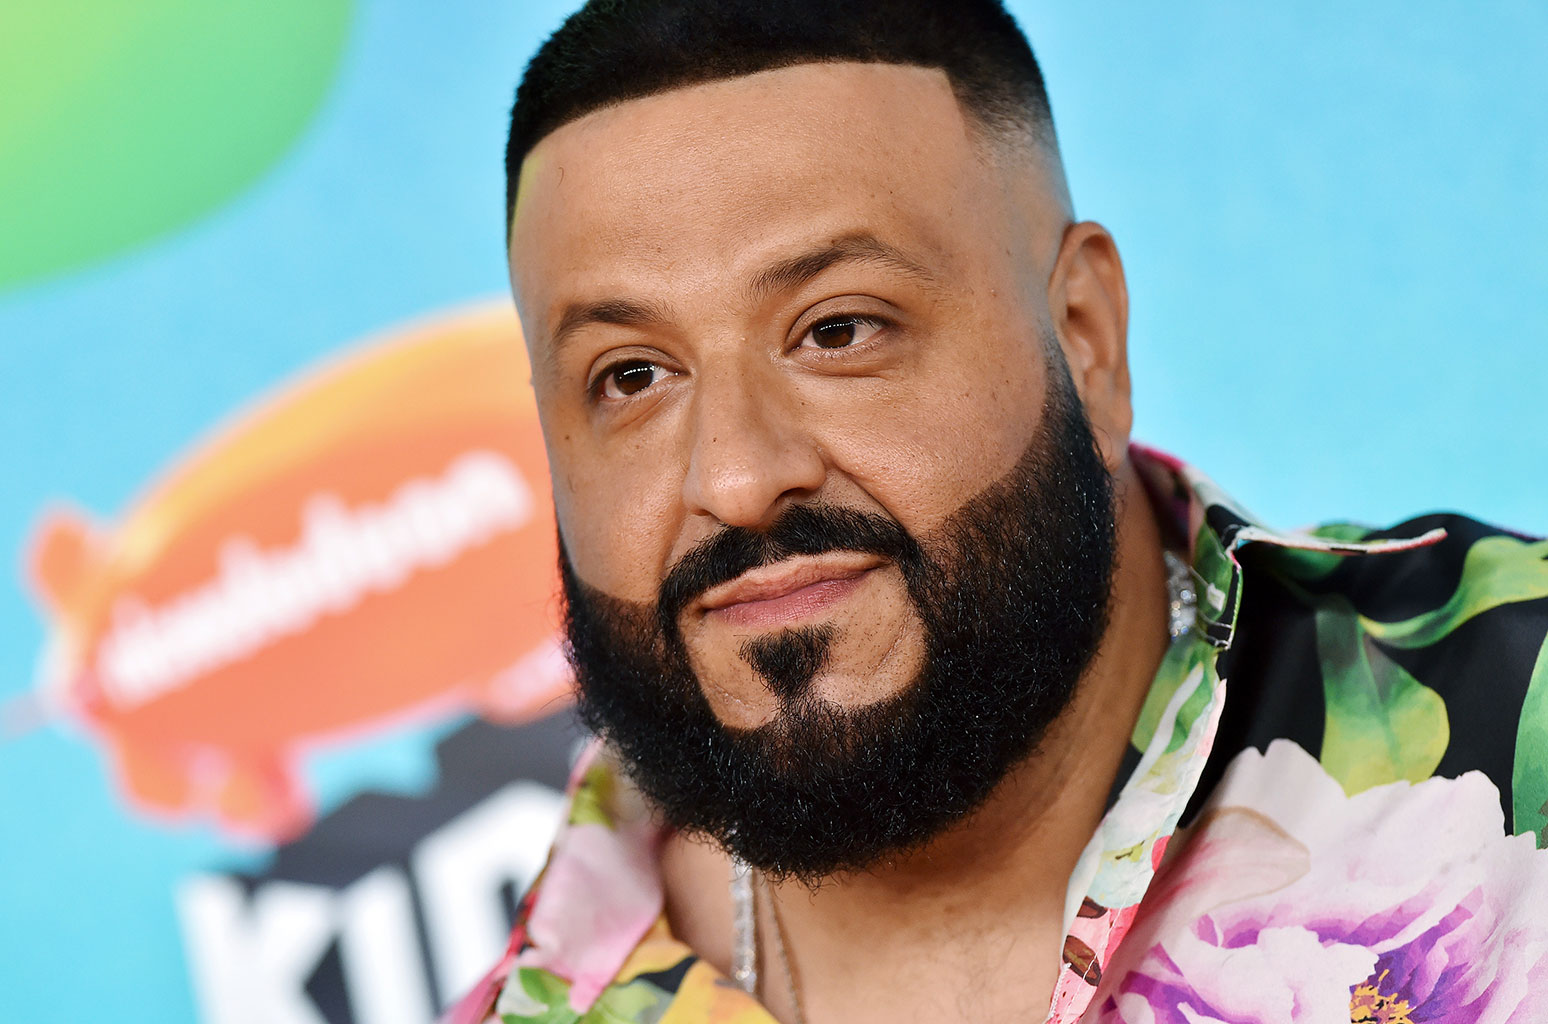 Music Monday – All I Do Is Win by DJ Khaled